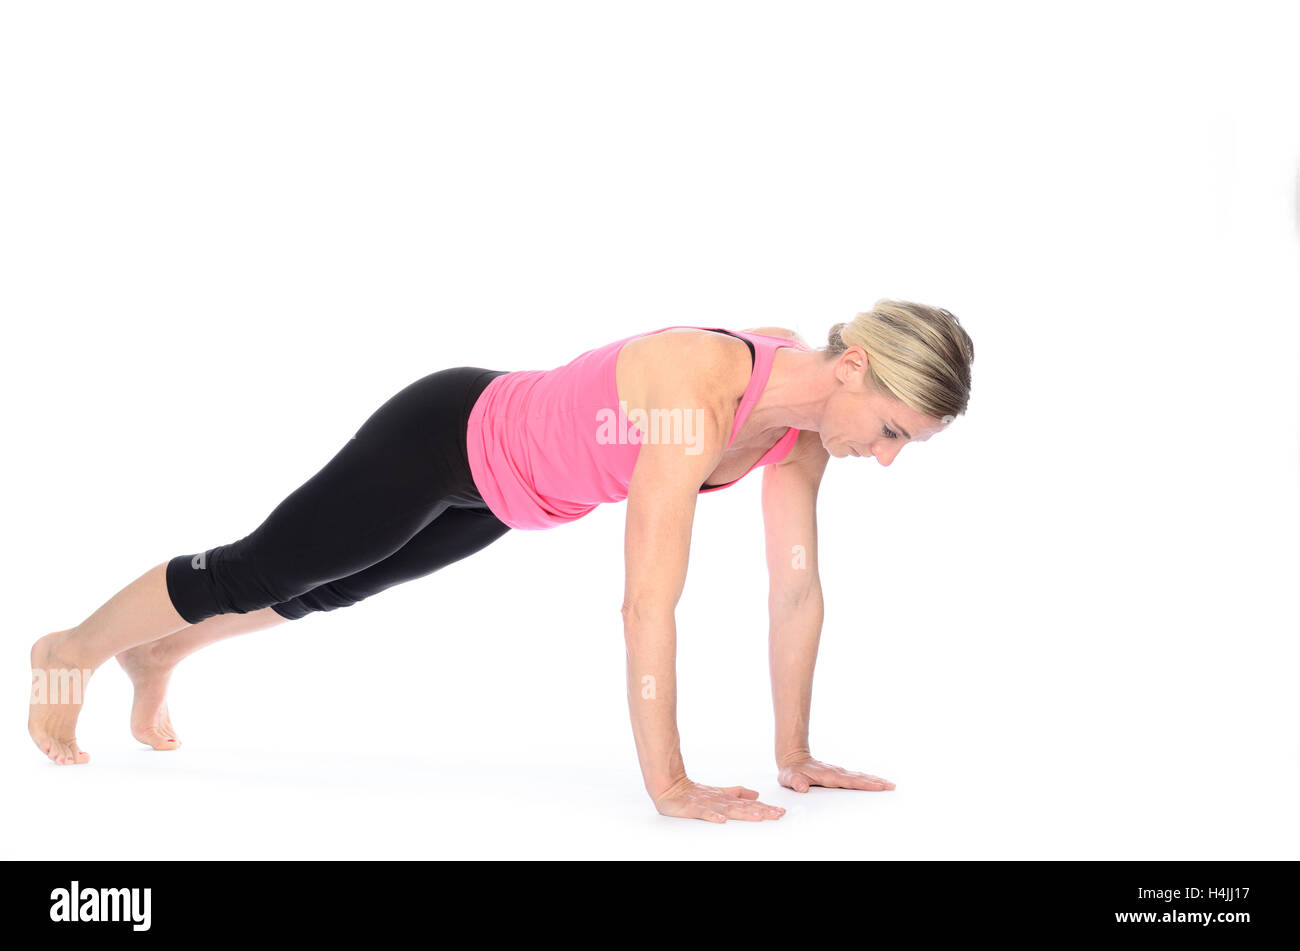 Healthy fit woman working out doing press-ups and balancing on her hands and toes isolated on white with copy space - Stock Image